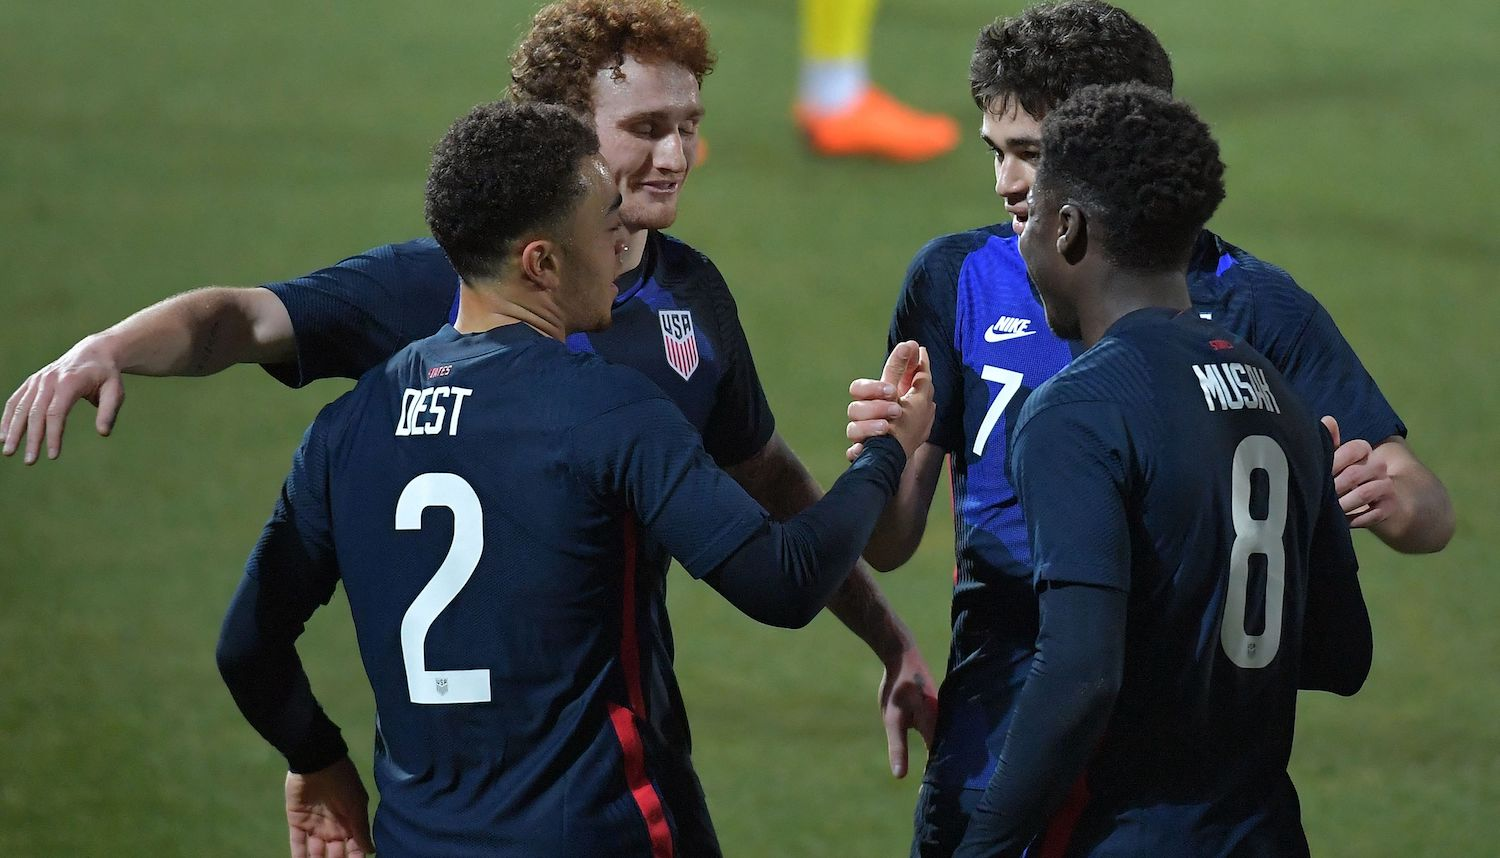 United States' defender Sergino Dest (L) celebrates after scoring the 1-0 during the FIFA World Cup Qatar 2022 friendly preparation football match USA v Jamaica in Vienna, on March 25, 2021. (Photo by JAKUB SUKUP / AFP) (Photo by JAKUB SUKUP/AFP via Getty Images)